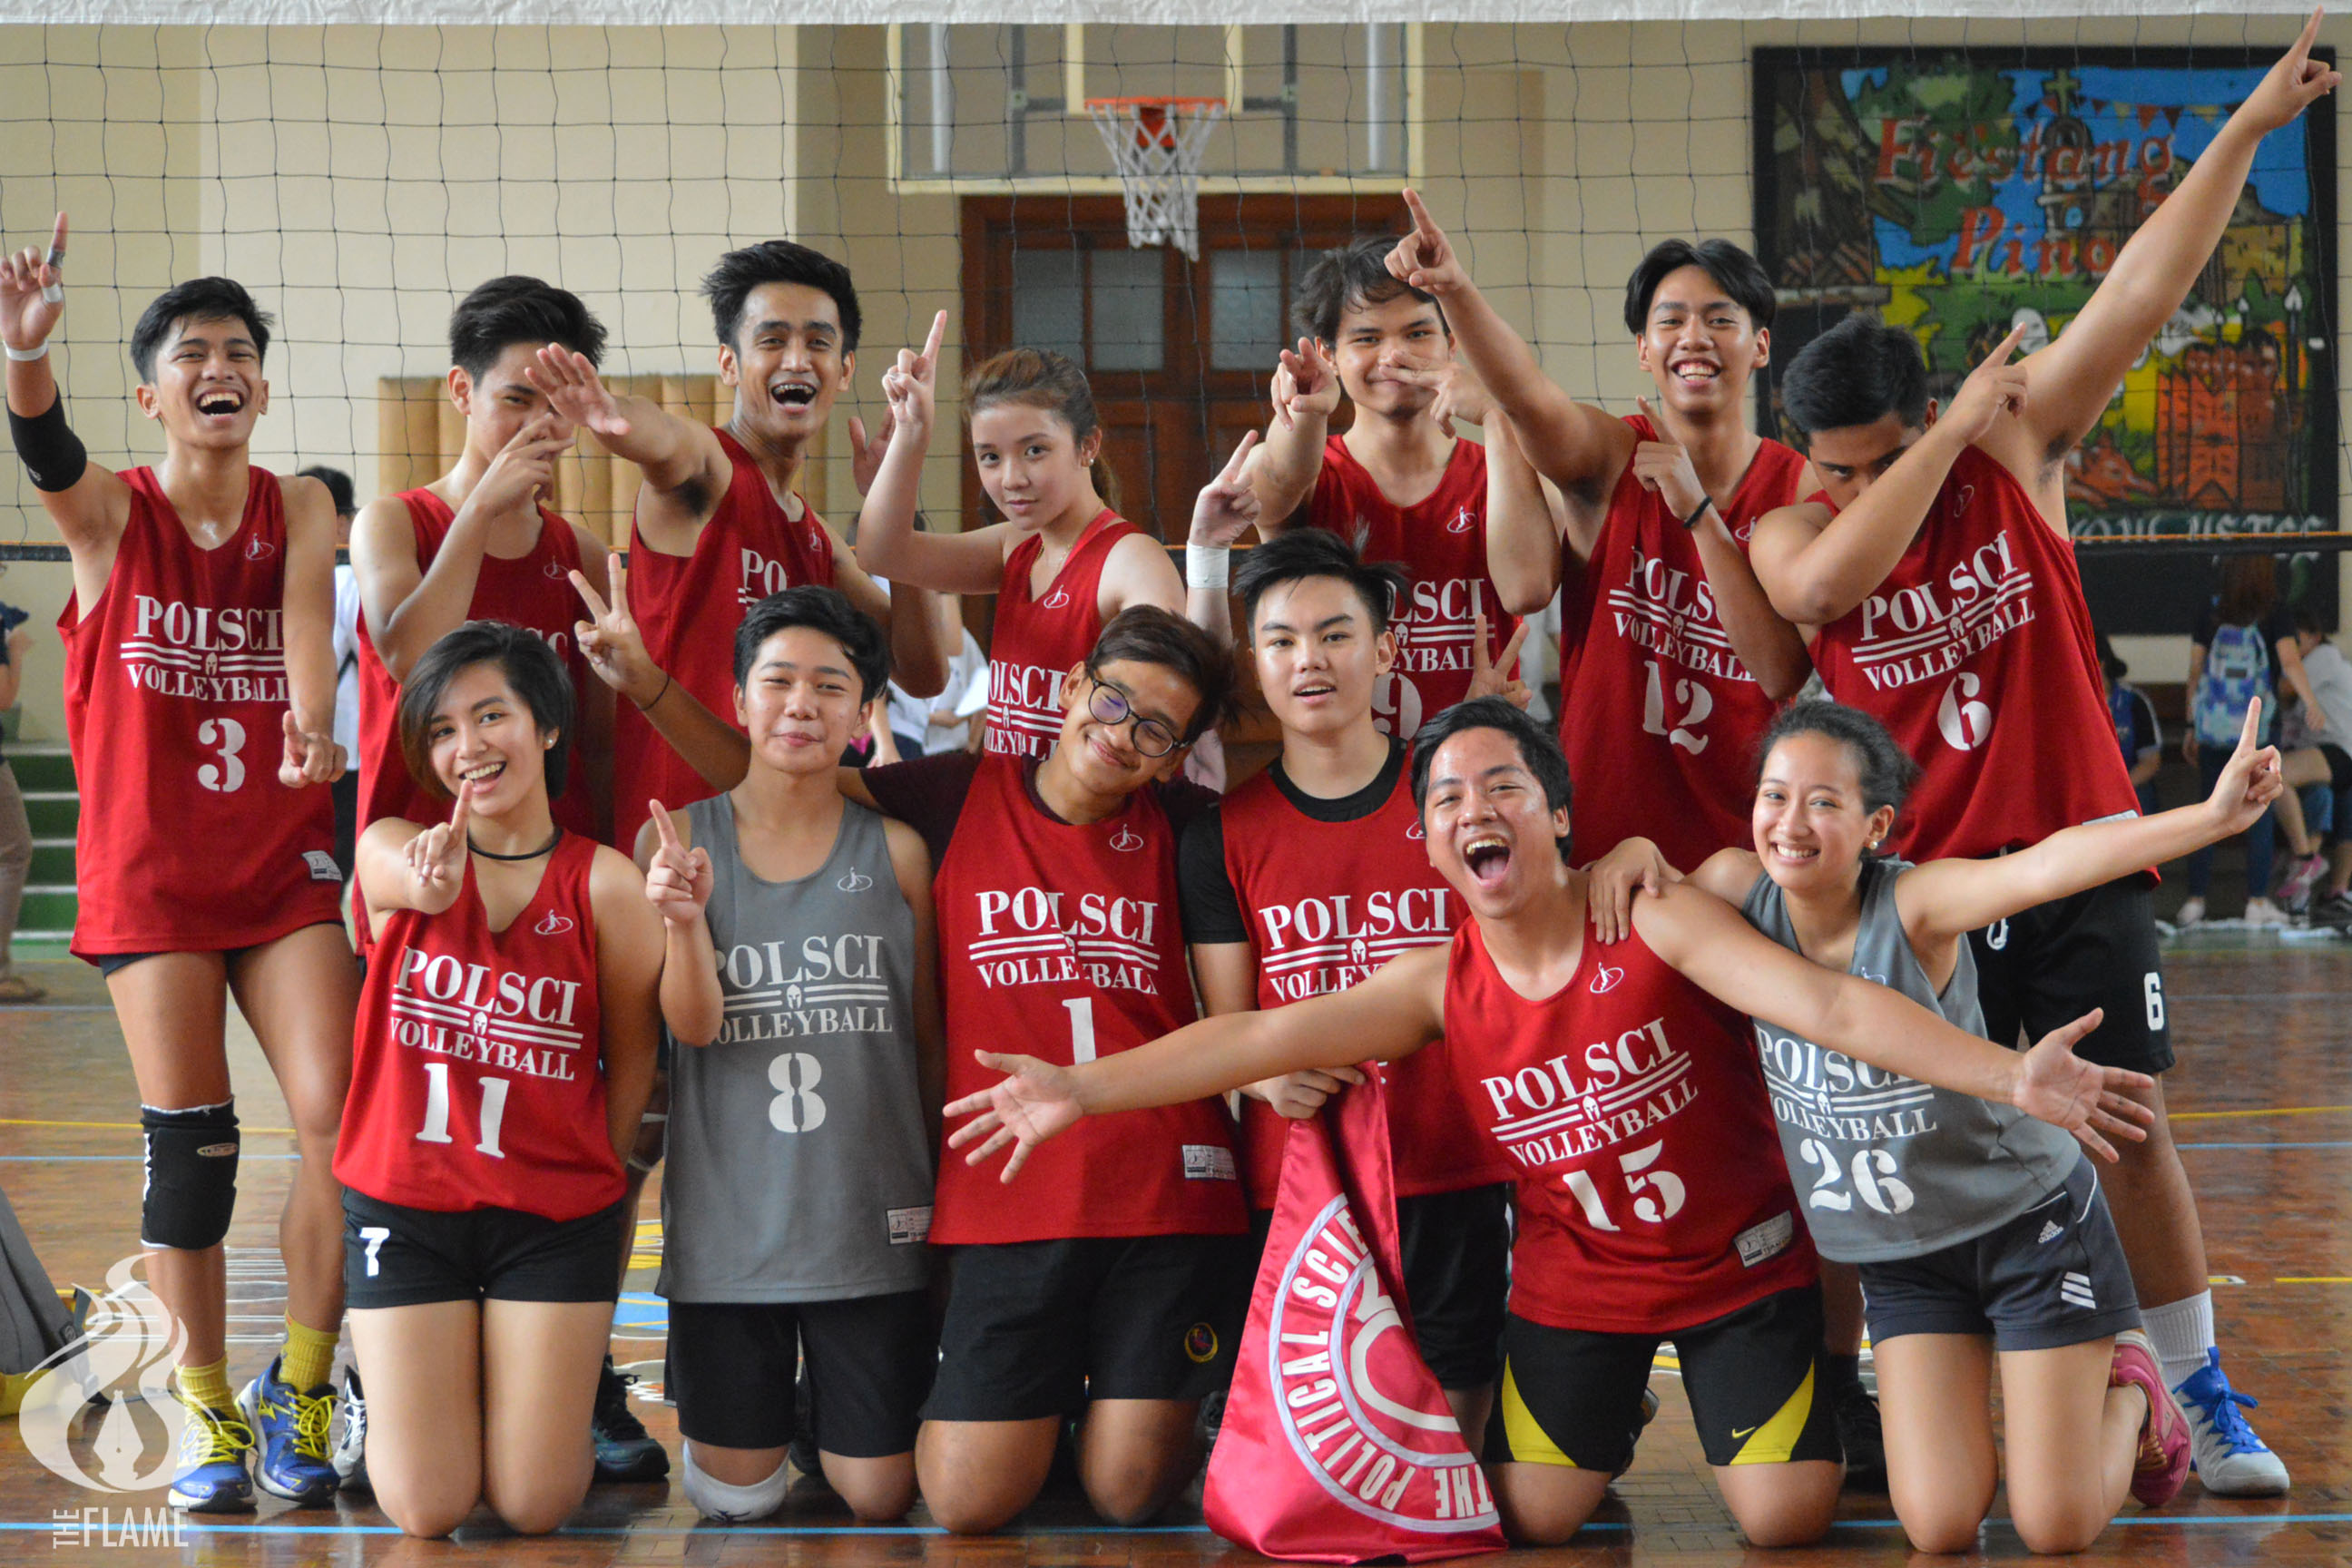 PolSci is back-to-back AB Sportsfest volleyball champion